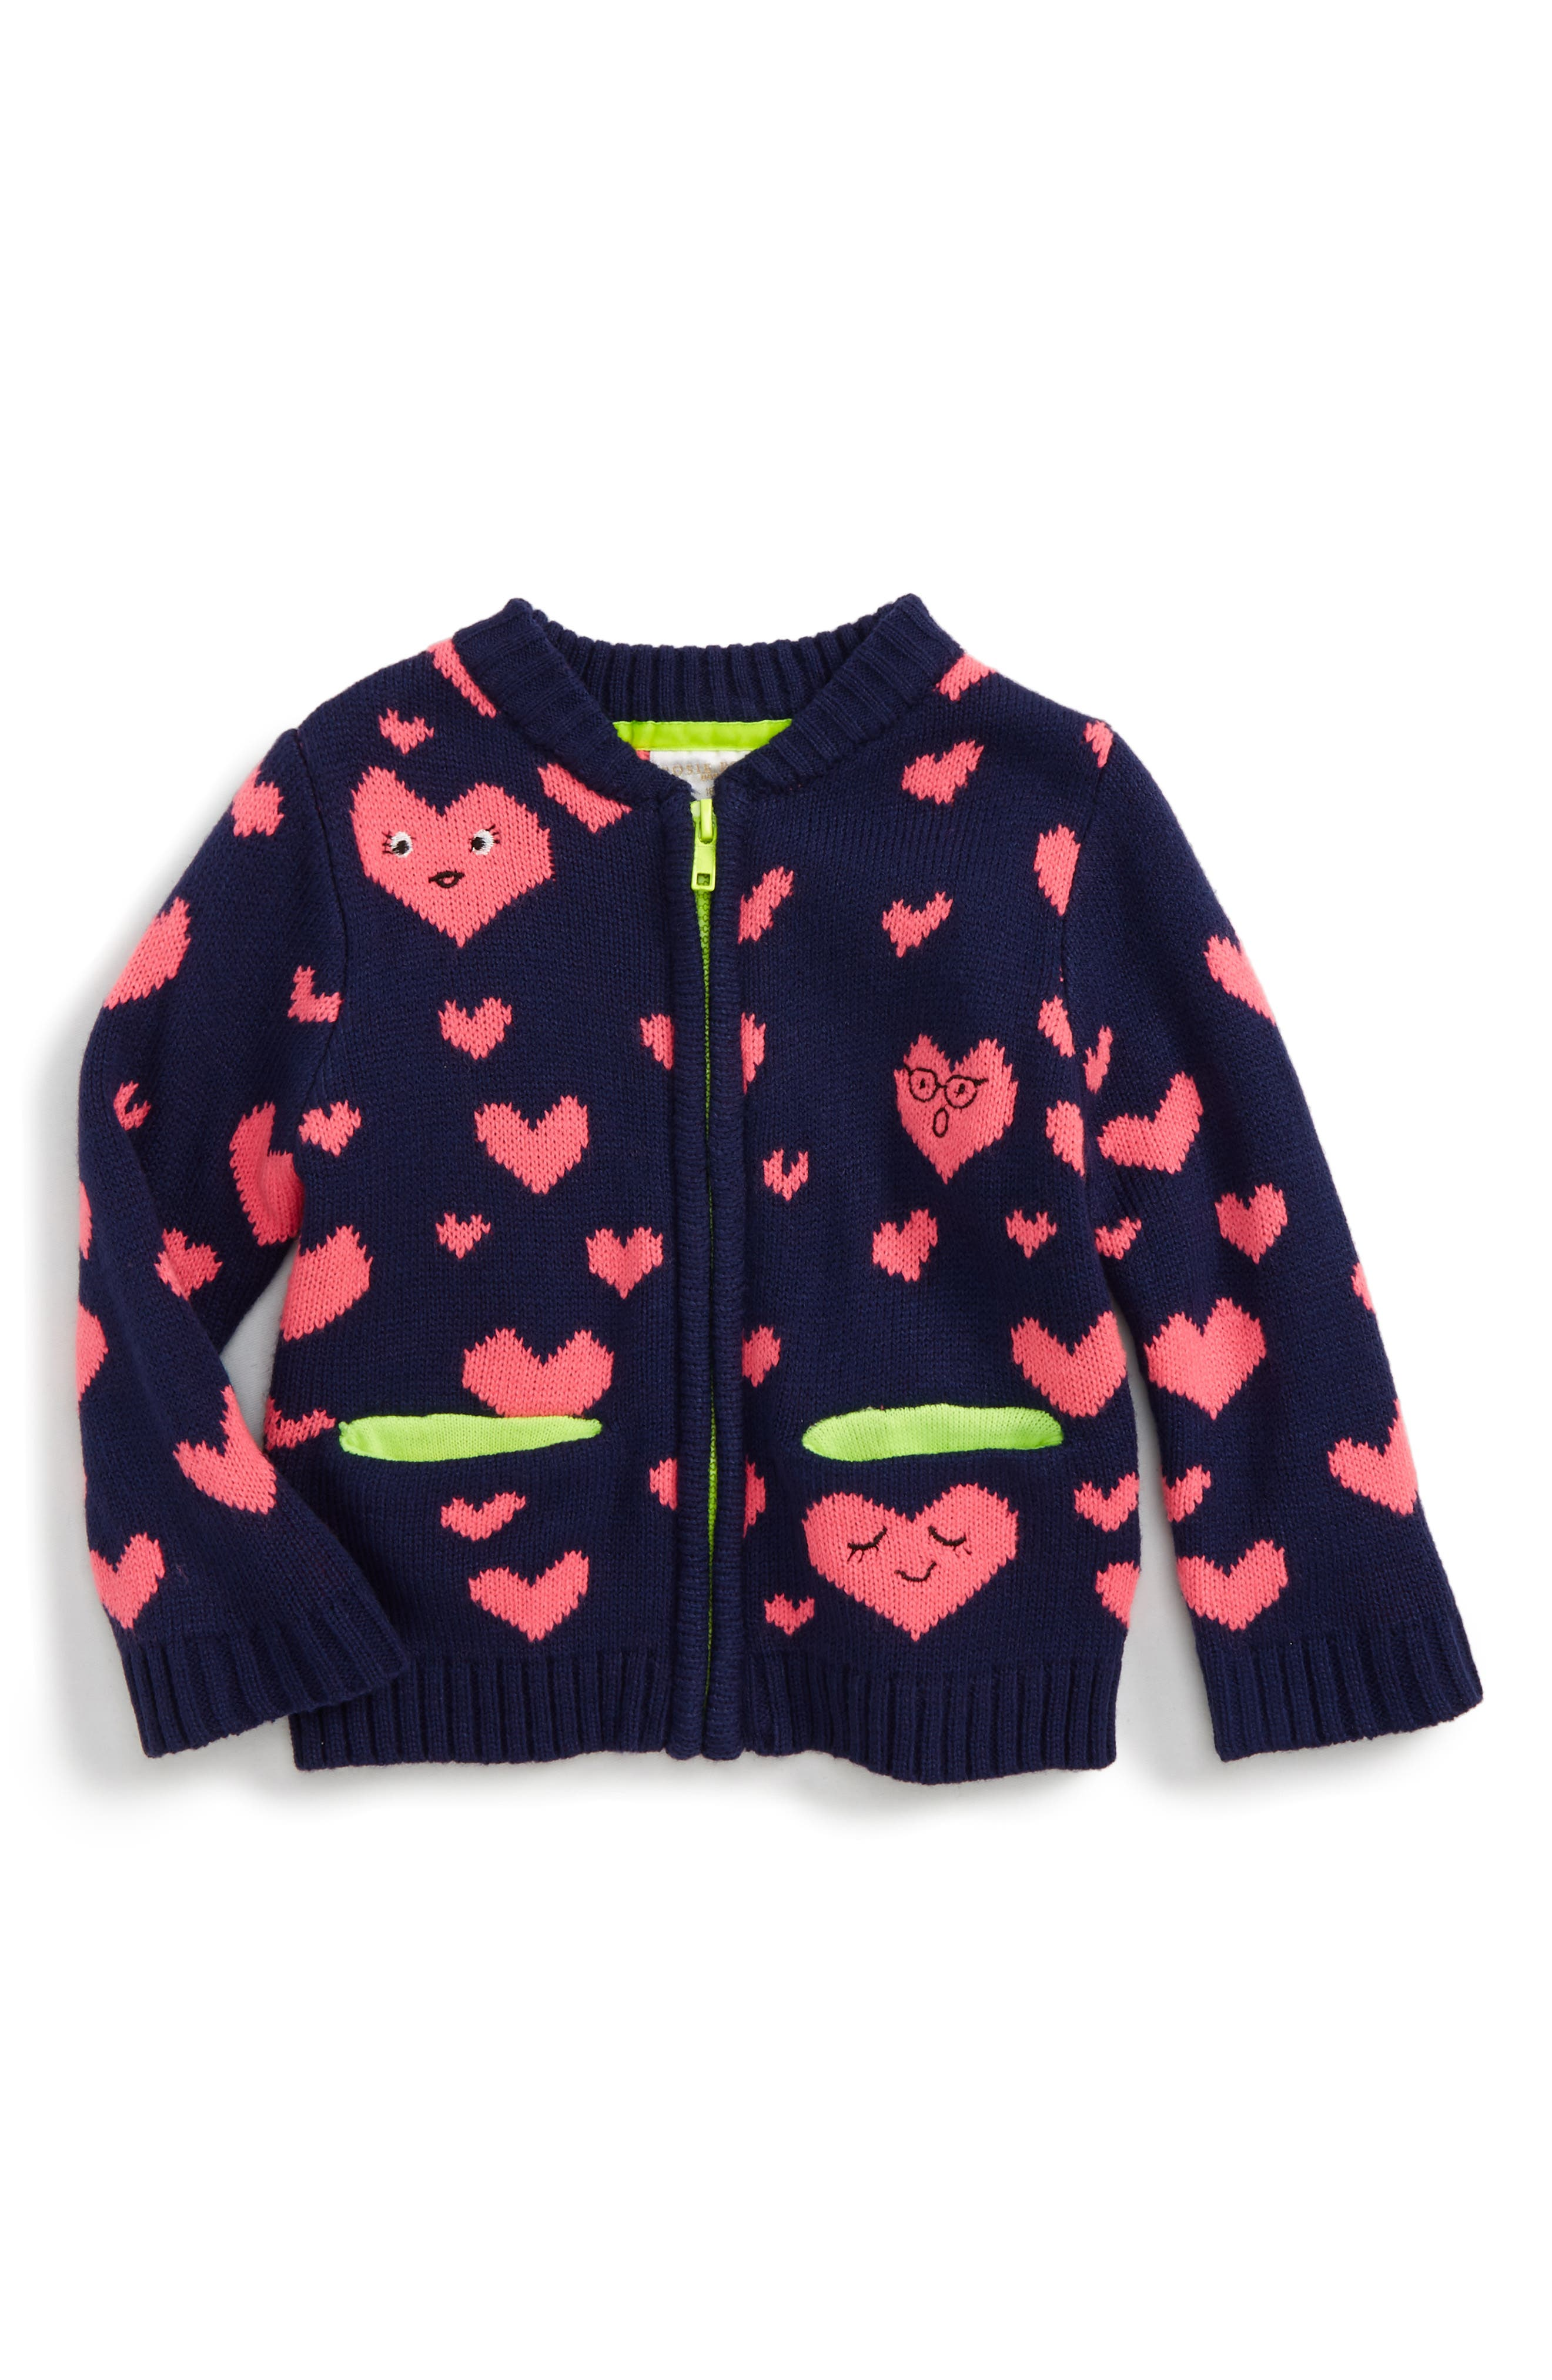 Rosie Pope Heart Zip Up Cardigan (Baby Girls)